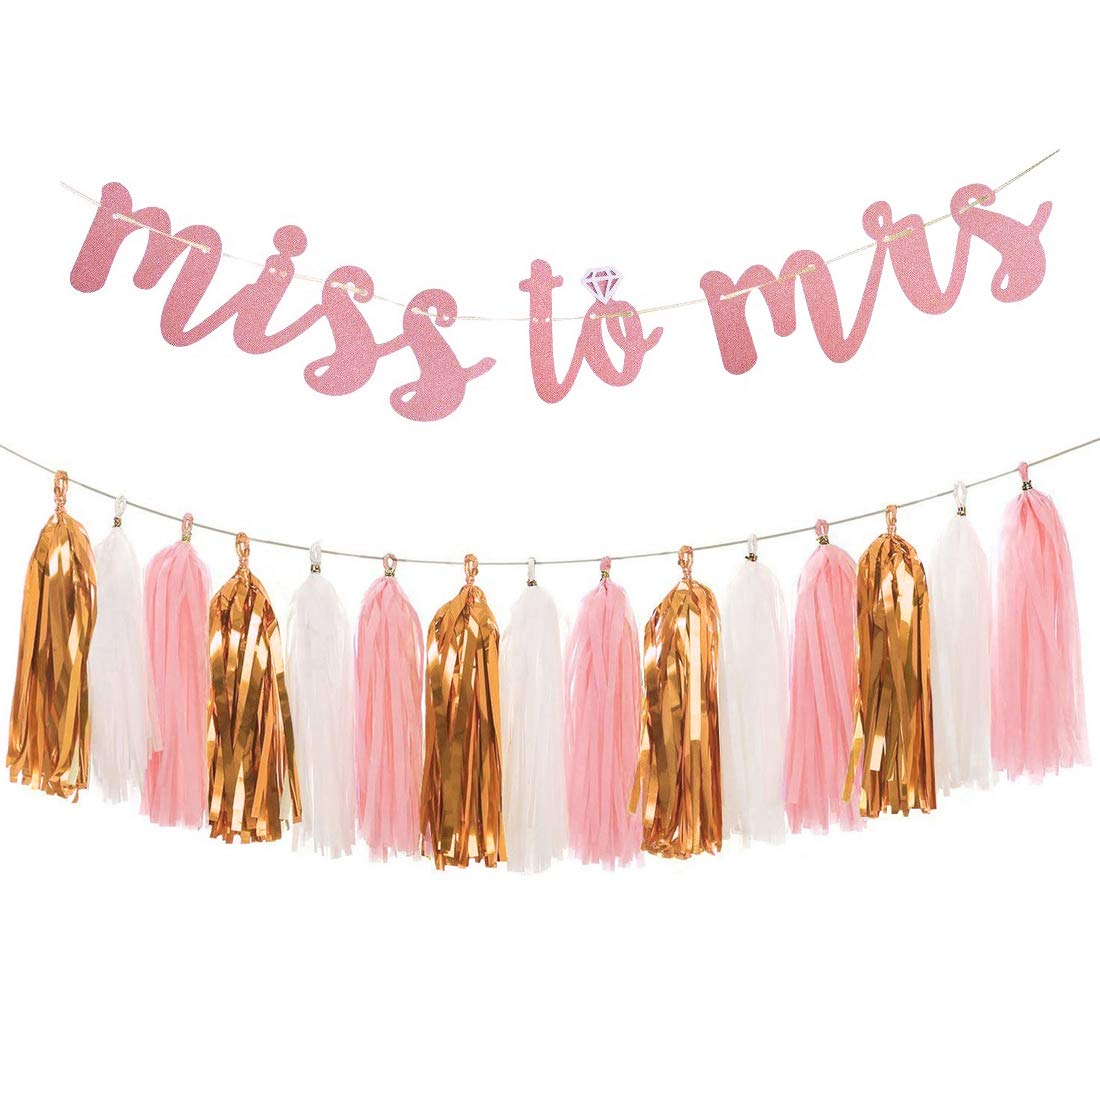 Happy Wedding Banner Hanging Sign Garland Pennant Photo Booth Props for Bridal Shower Wedding Engagement Car Party Decoration Wedding Bunting Banner with 8 Flicker Mode LED Fairy String Light